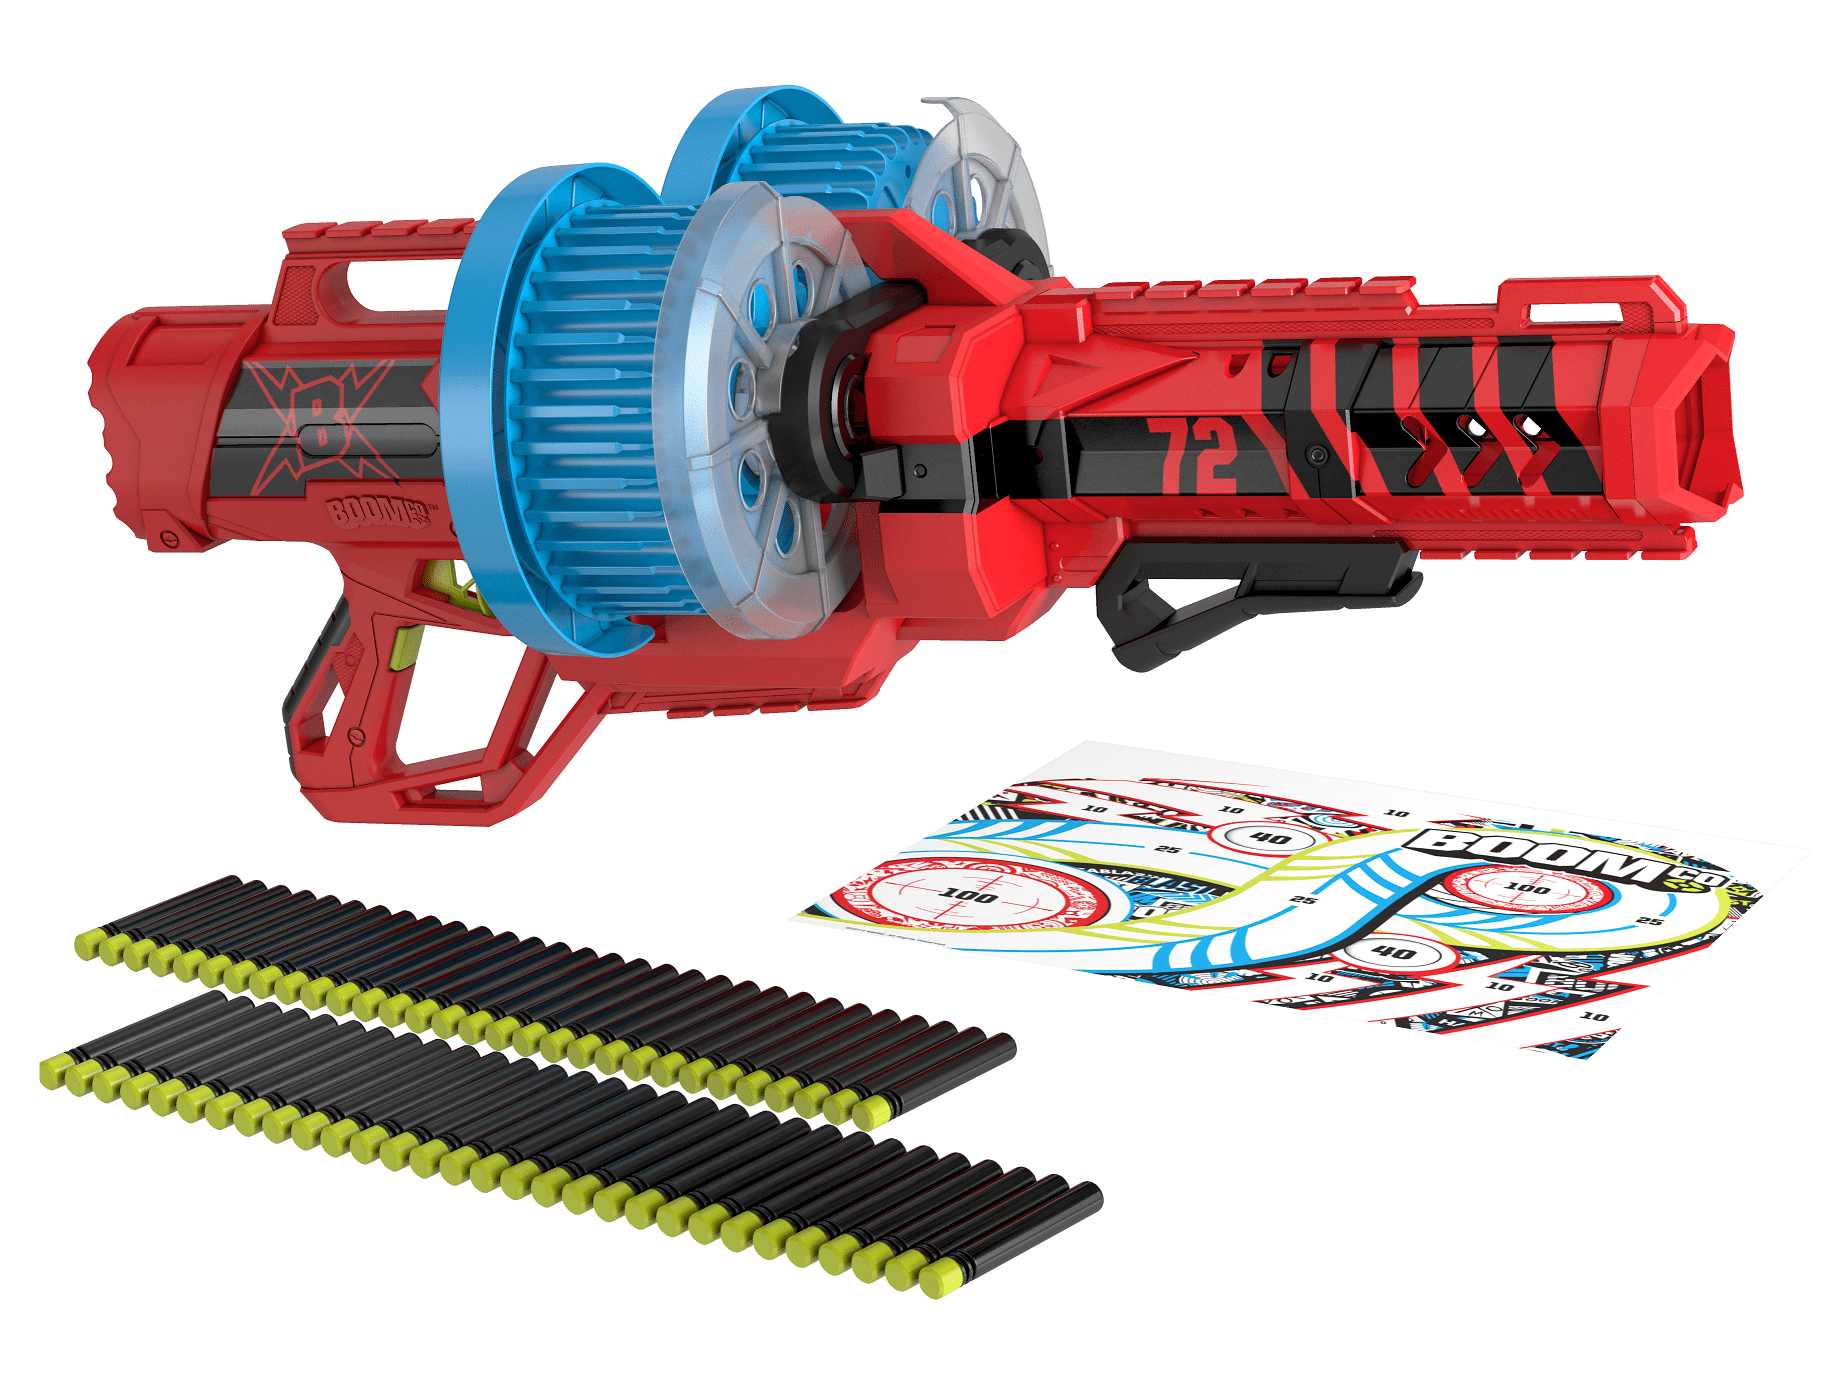 The World S Best Nerf Gun Is Now From Boomco